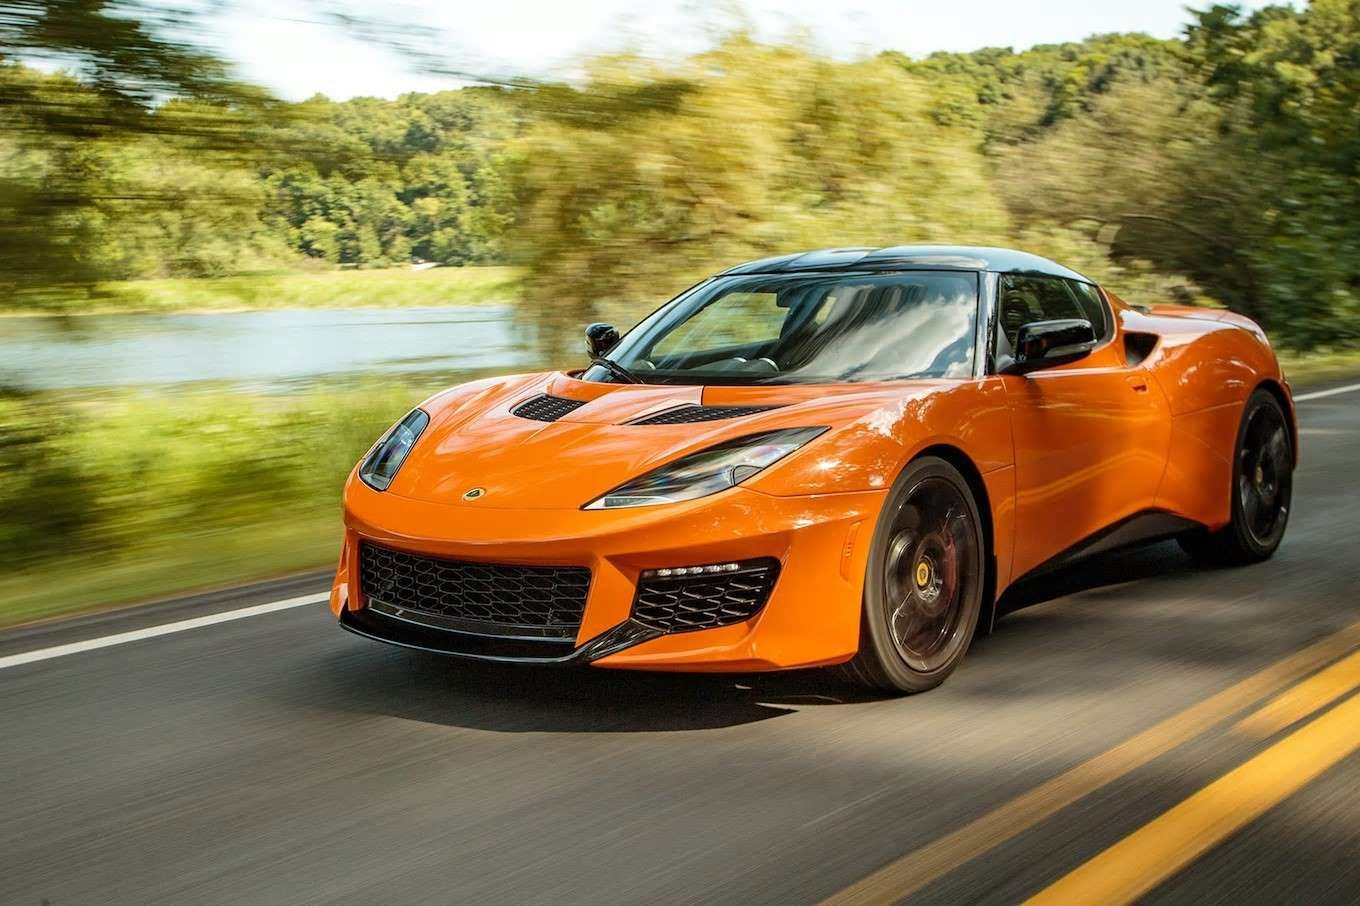 Base Price 93 500 104 500 Body Type Hatchbackunchanged While We Wait For The Next Generation El Motor Trend Staff Evora New Cars Lotus